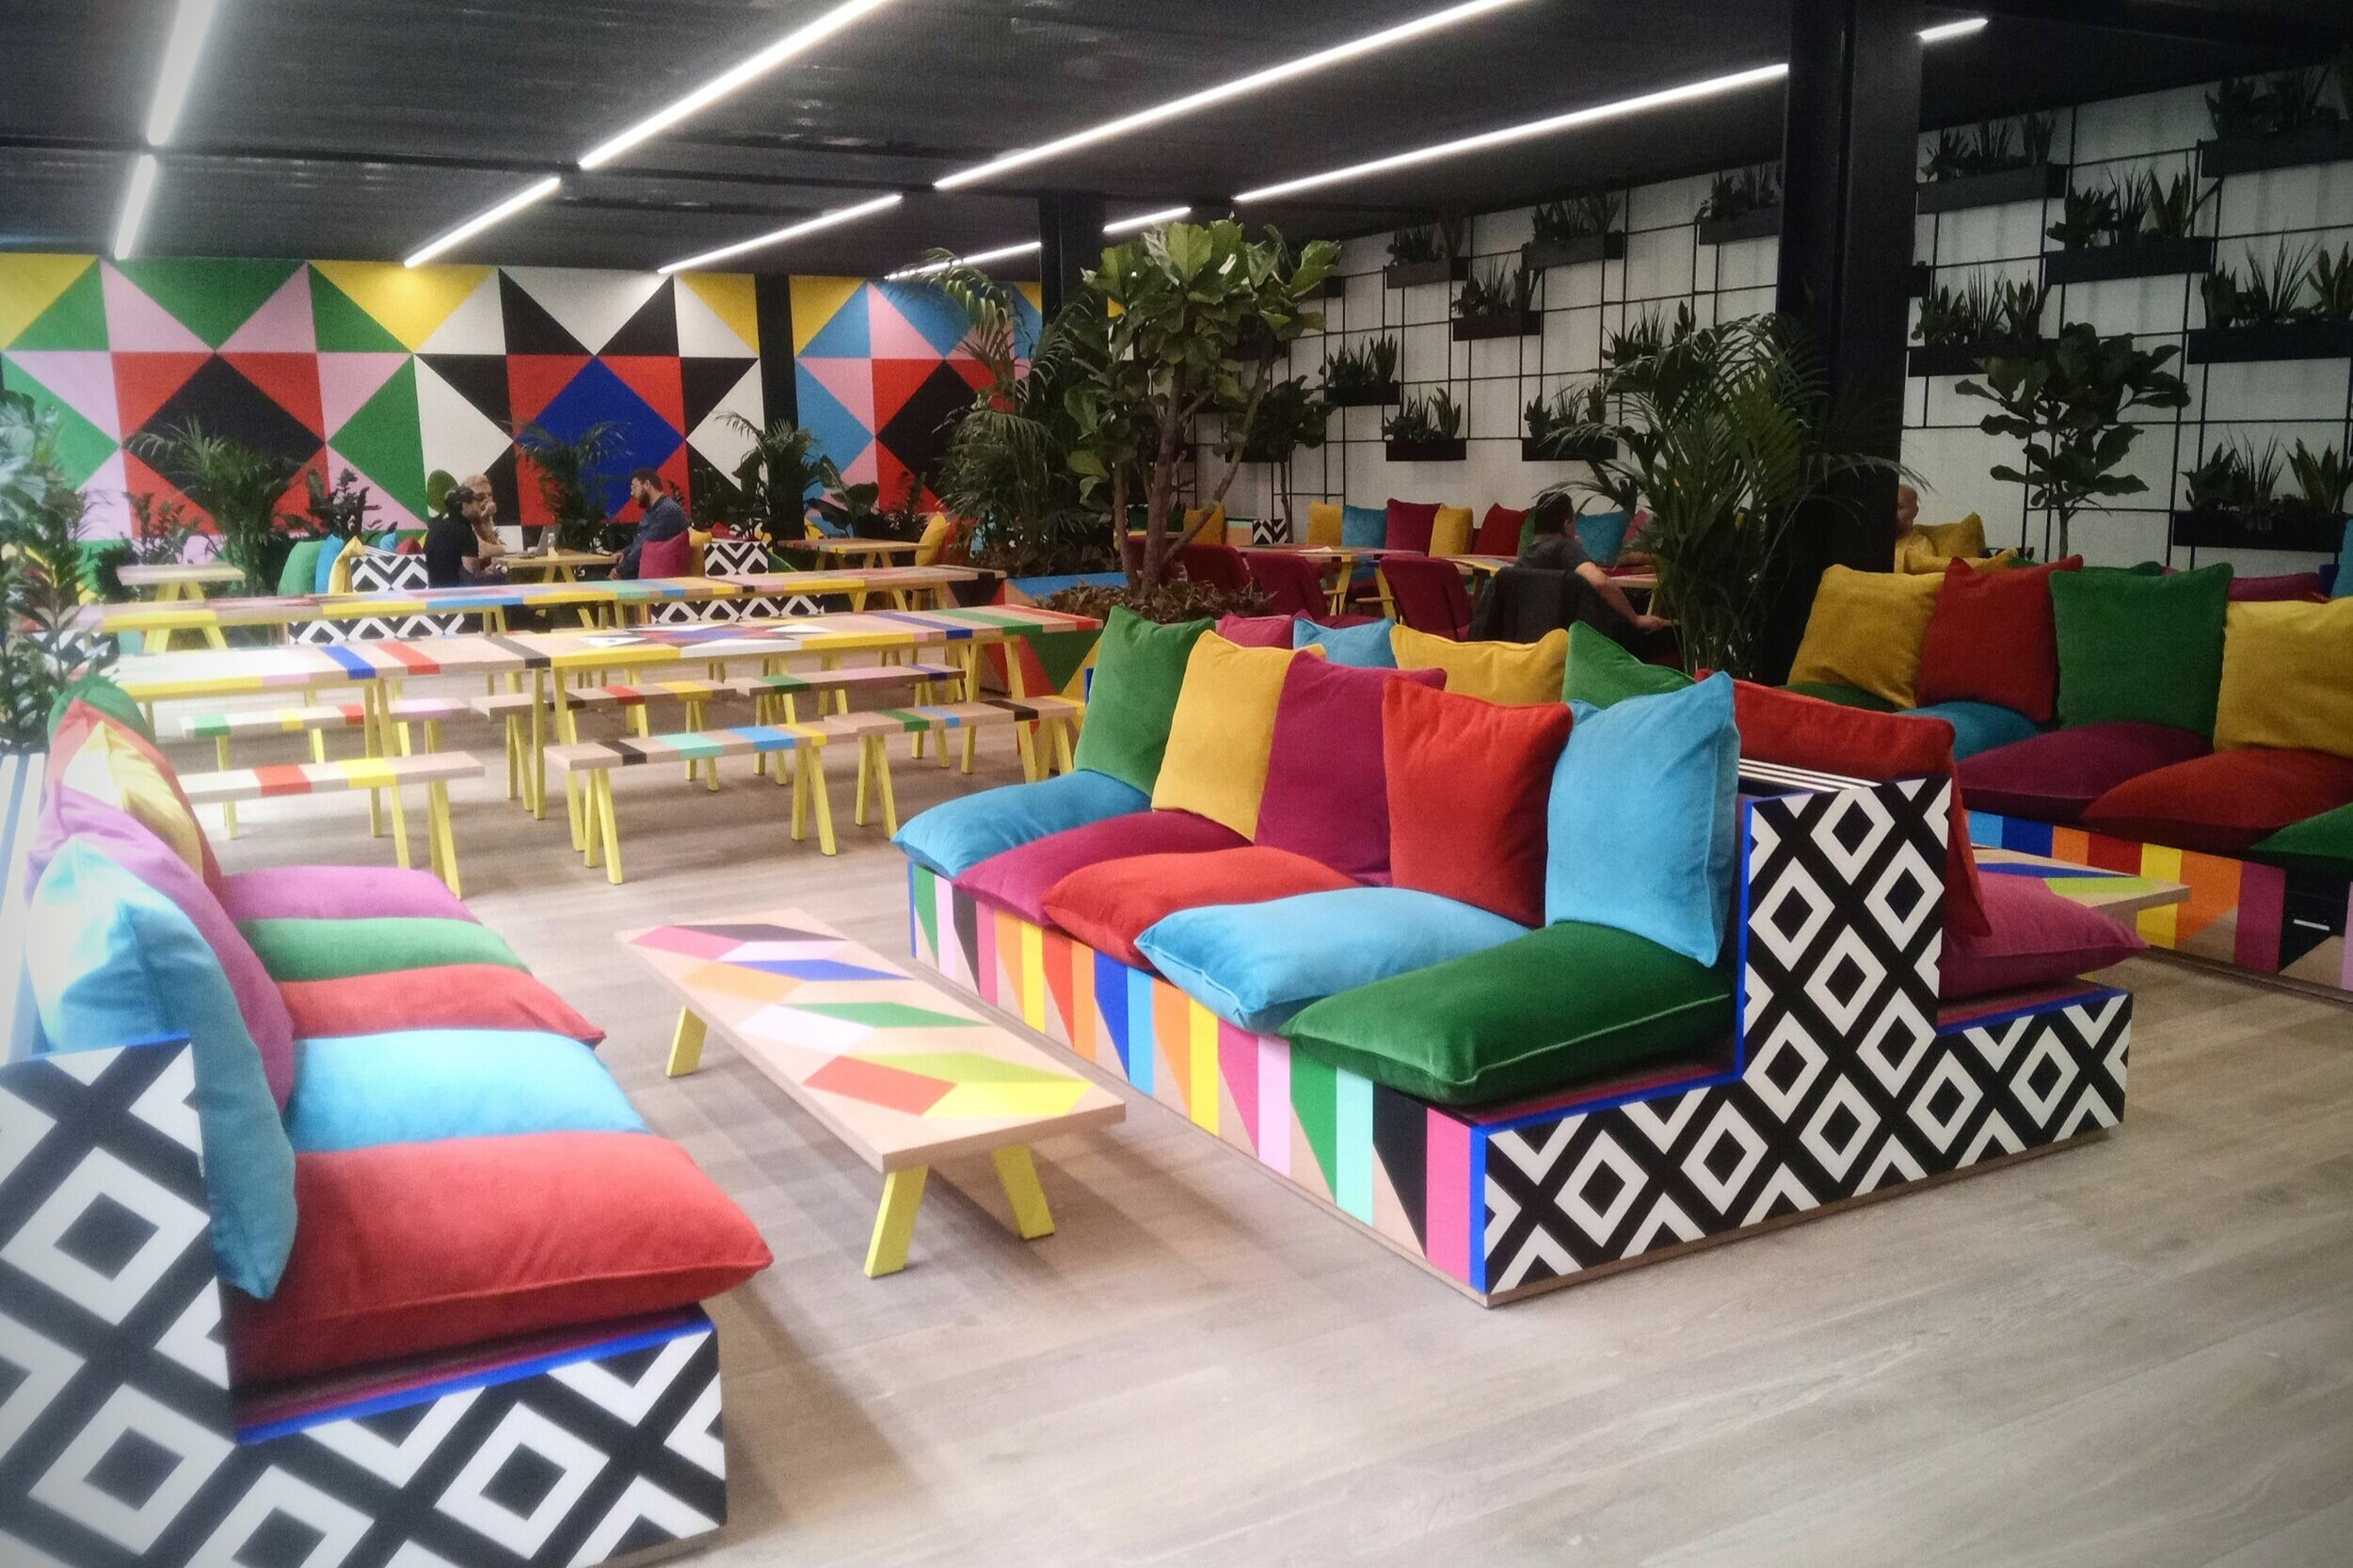 bishopsgate - Design project by artist Morag Myerscough.Over 120 scatter cushions made to fit in with her re-imagined office space on Finsbury Avenue.